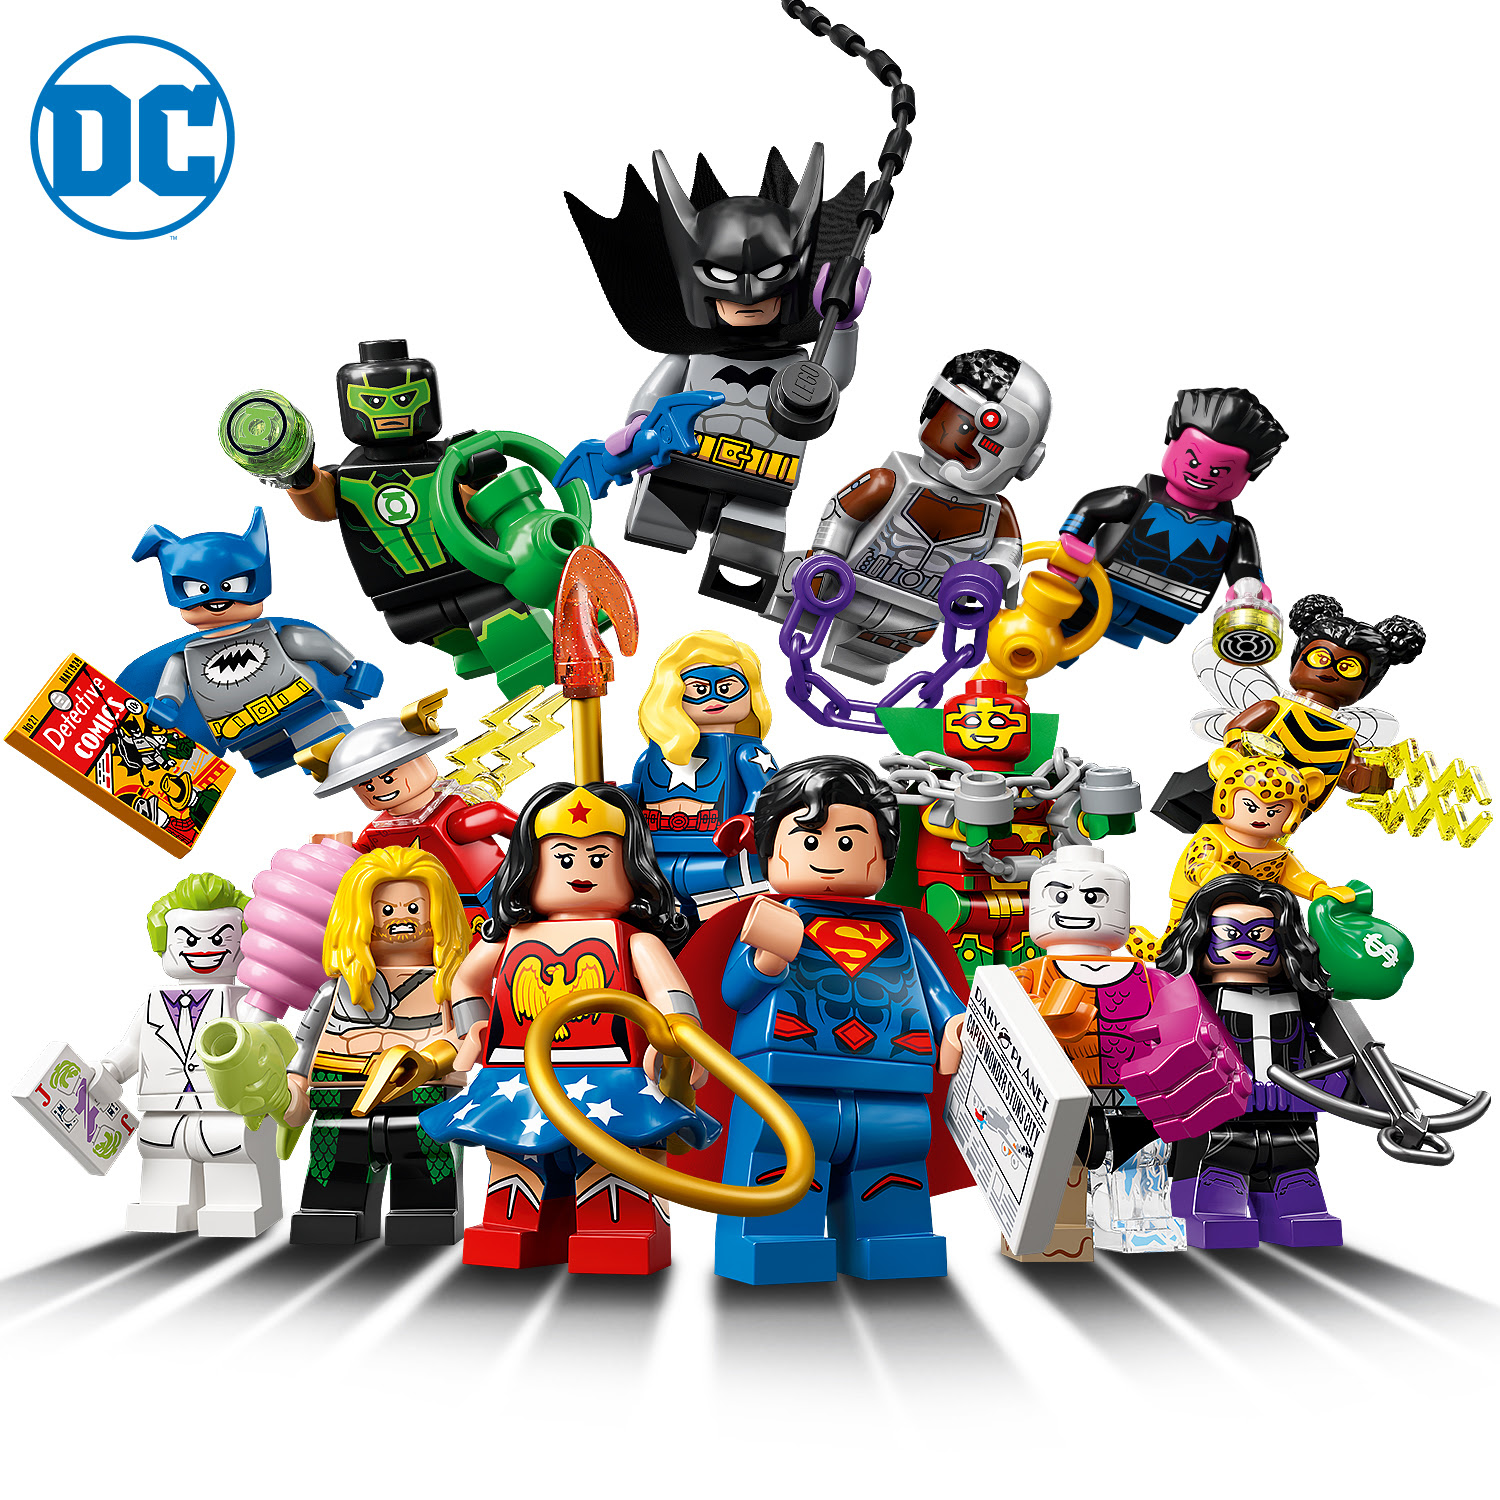 LEGO Collectable Minifigures DC Super Heroes Series - Header Image of all Heroes